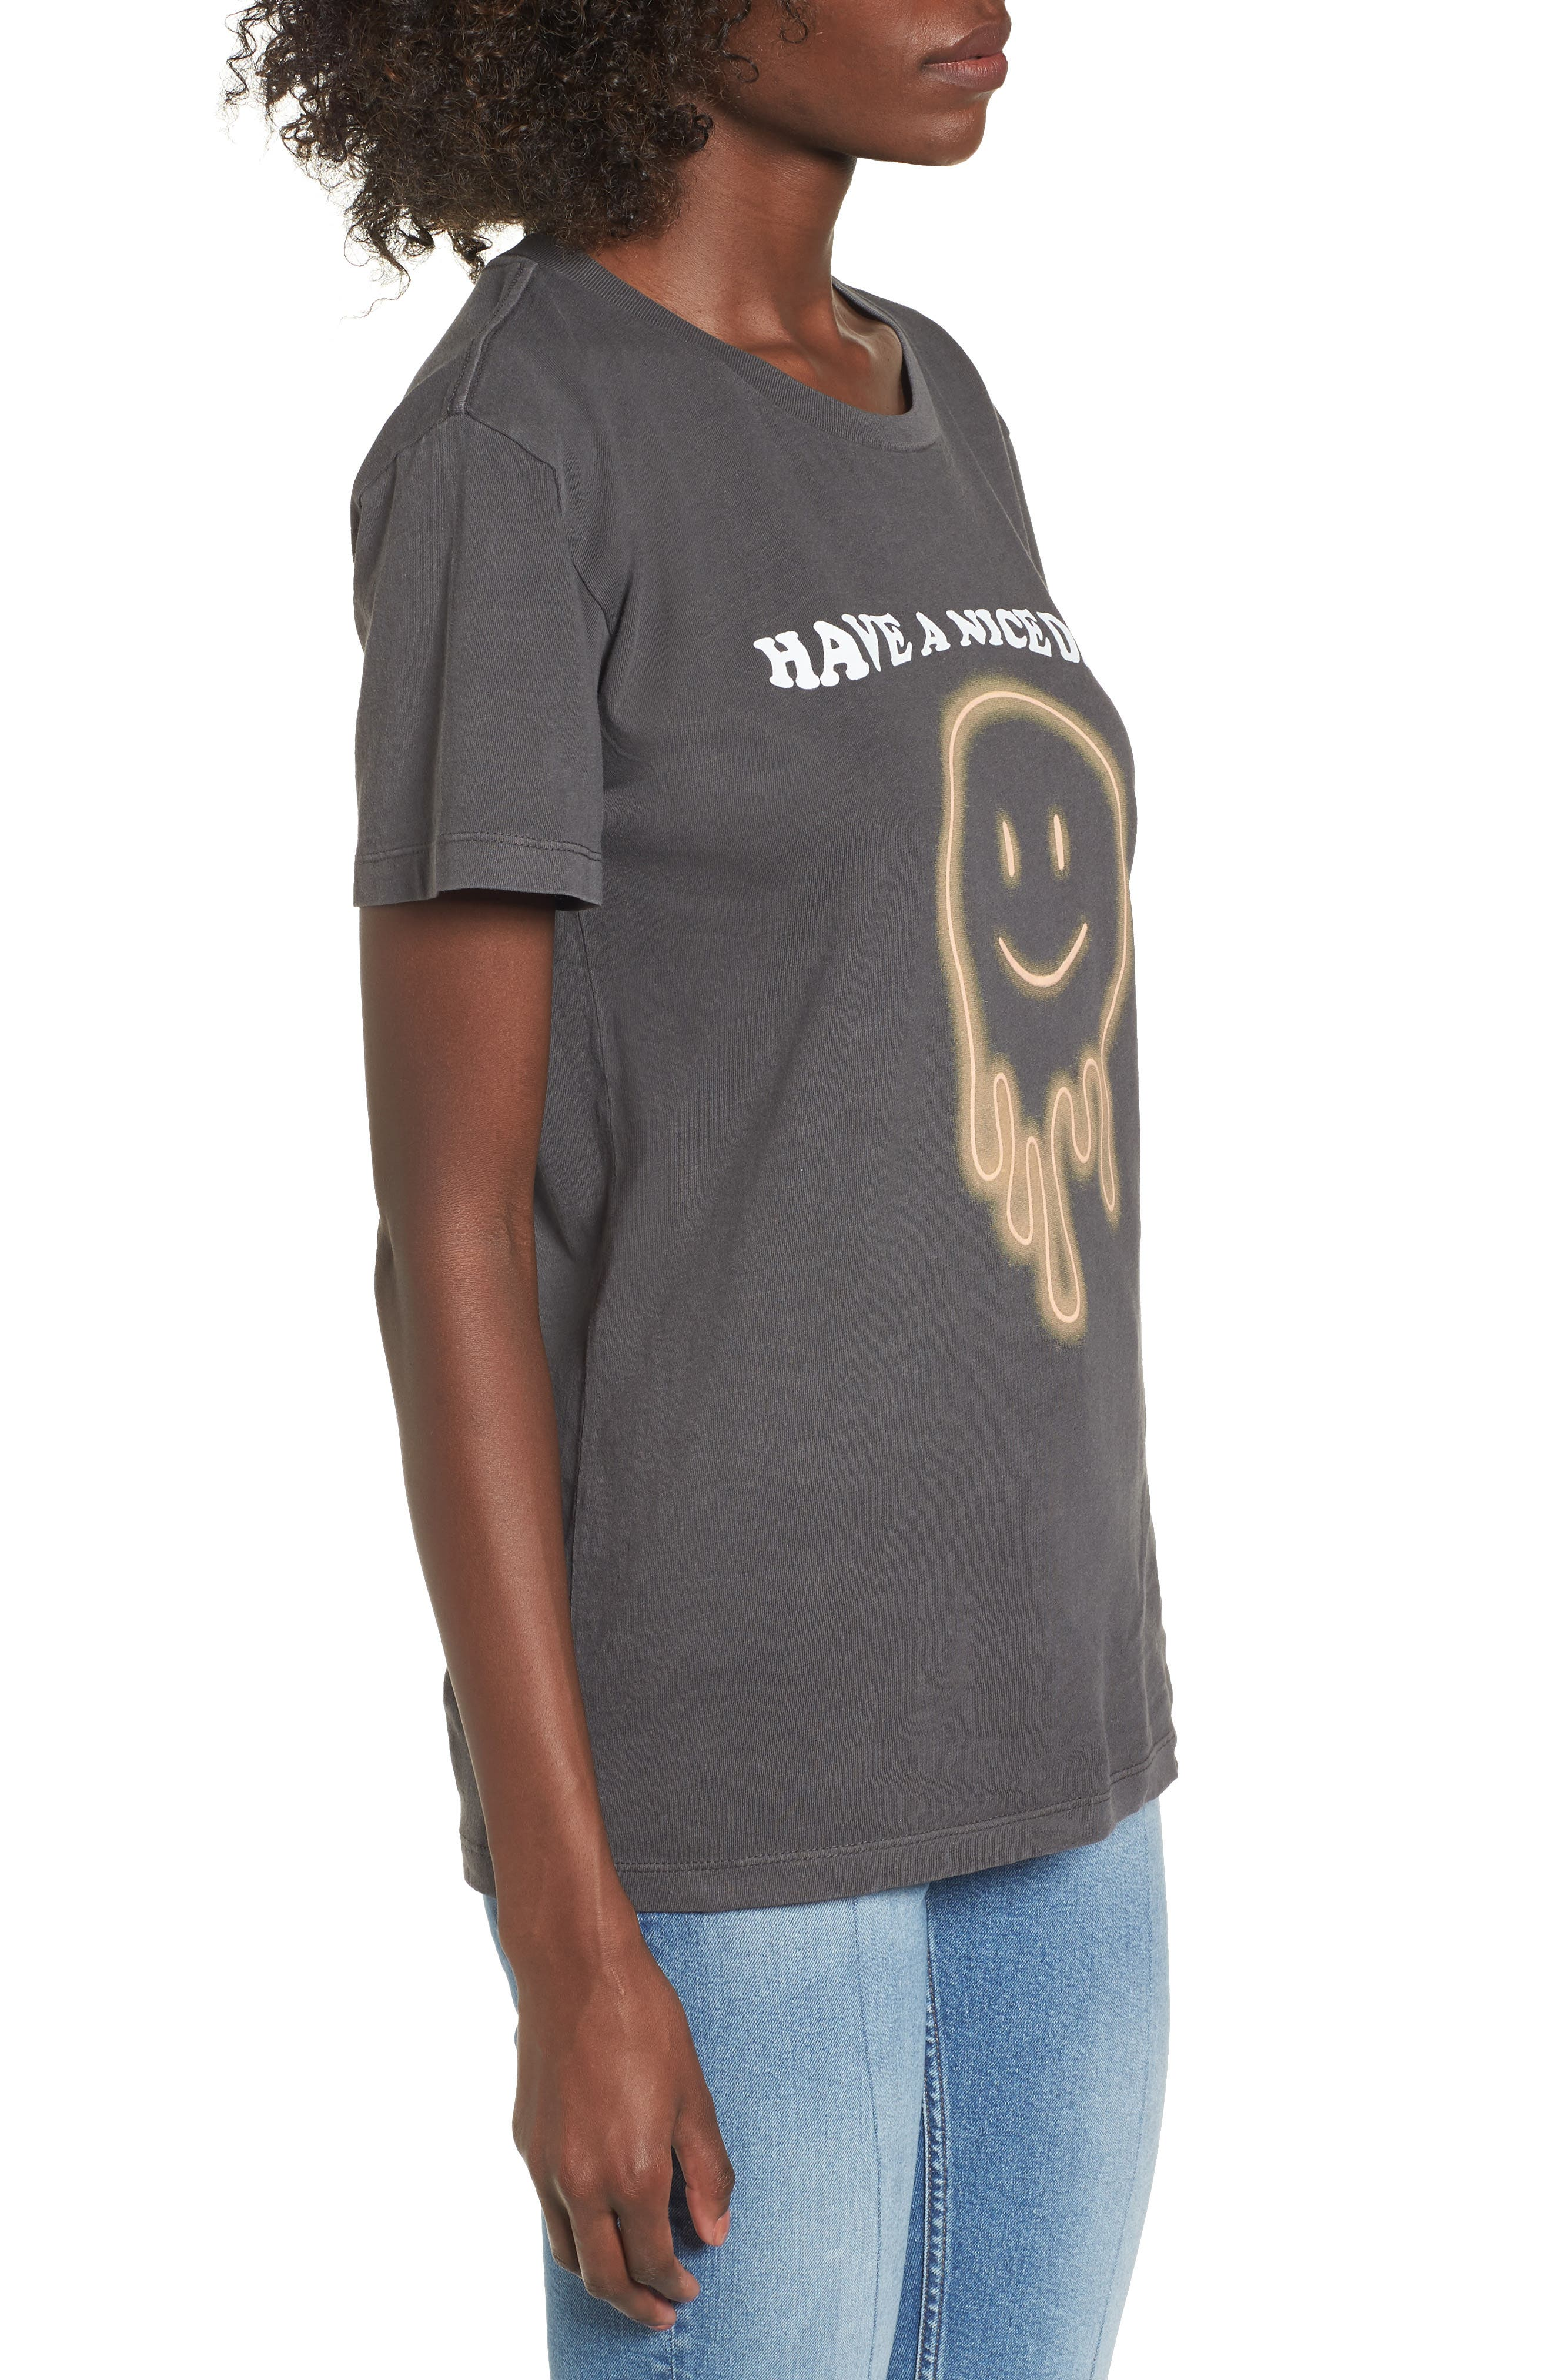 Have a Nice Day Boyfriend Tee,                             Alternate thumbnail 3, color,                             Washed Black